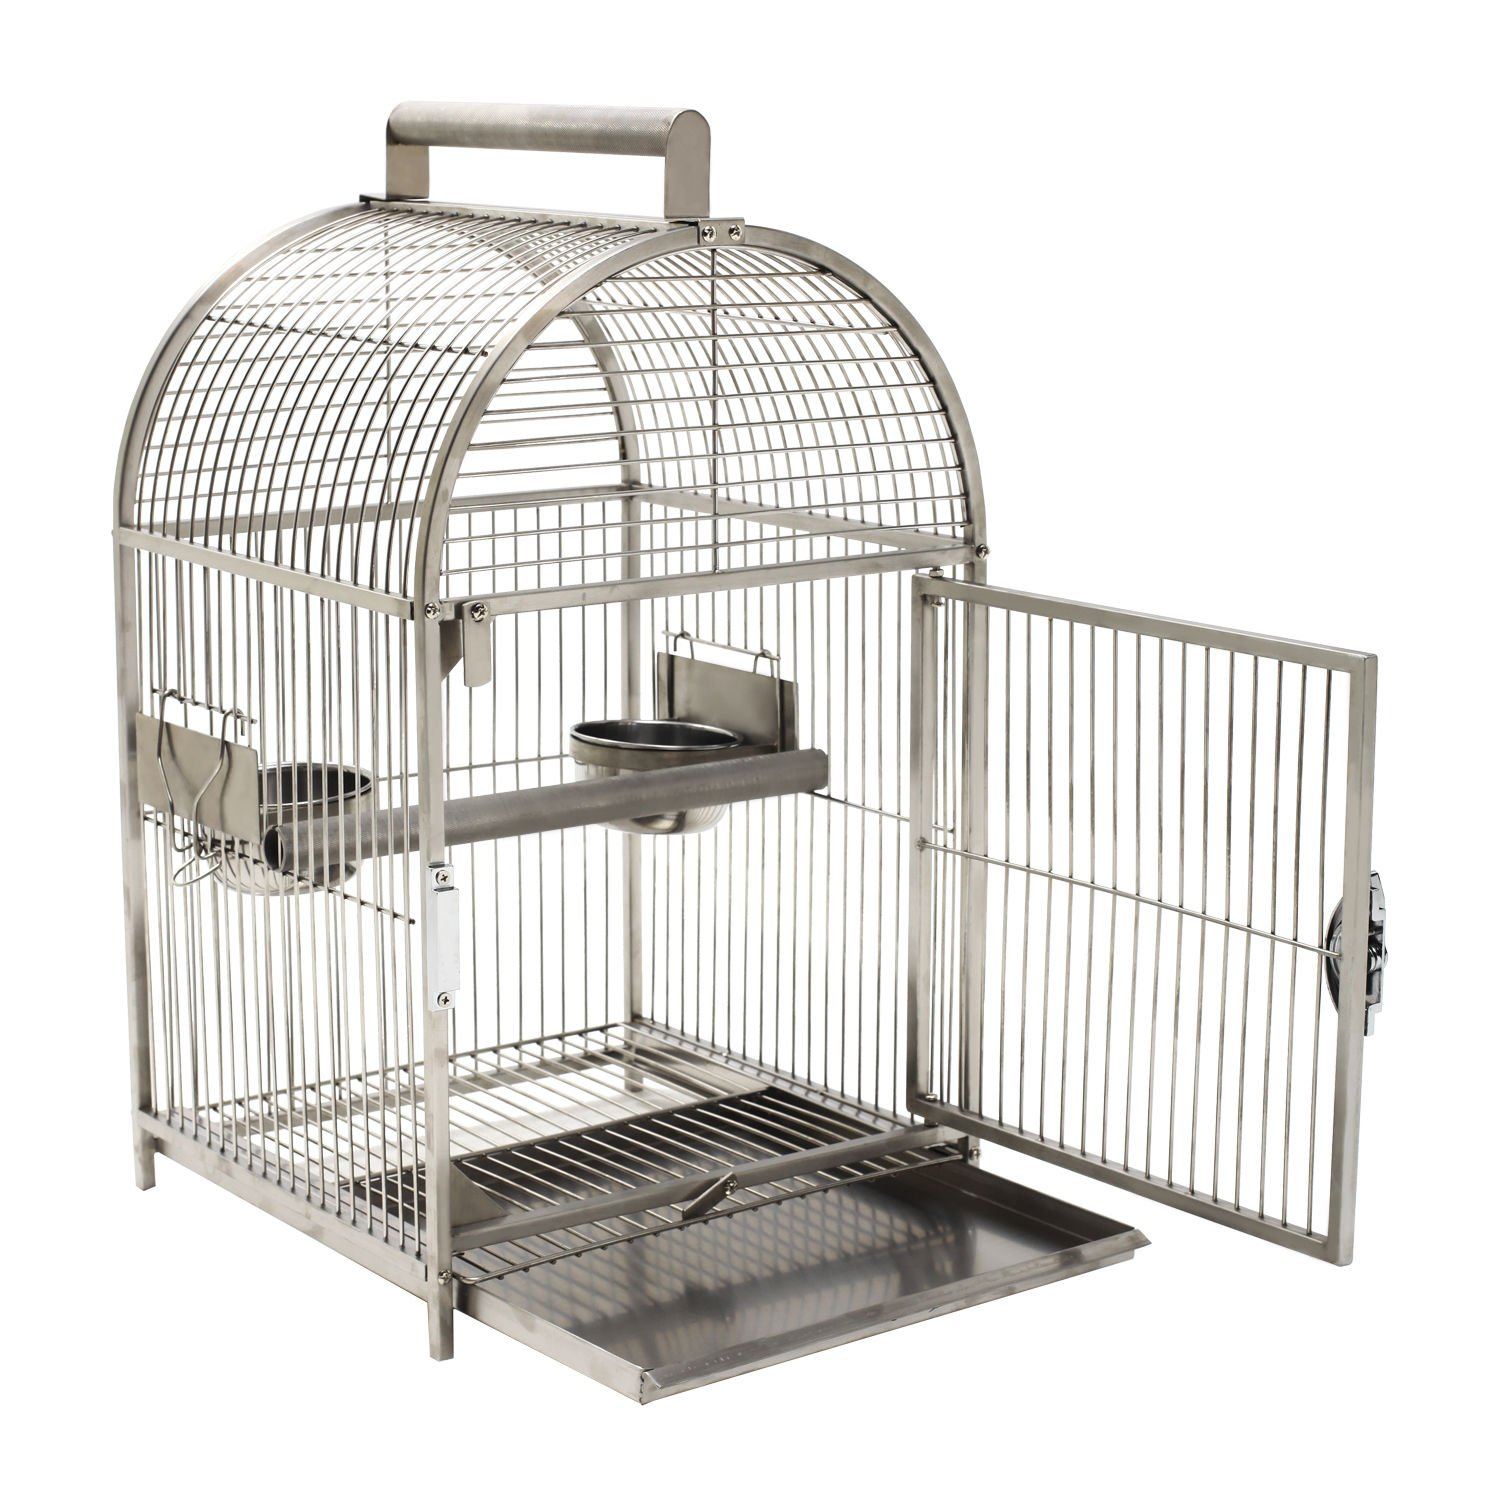 Generic .. ier Cockat Parrot Macaws Bird Cage Carrier Cockatiel Travel Ca Travel Cages ges S Portable Bird Cages inless steel Stainless steel by Generic